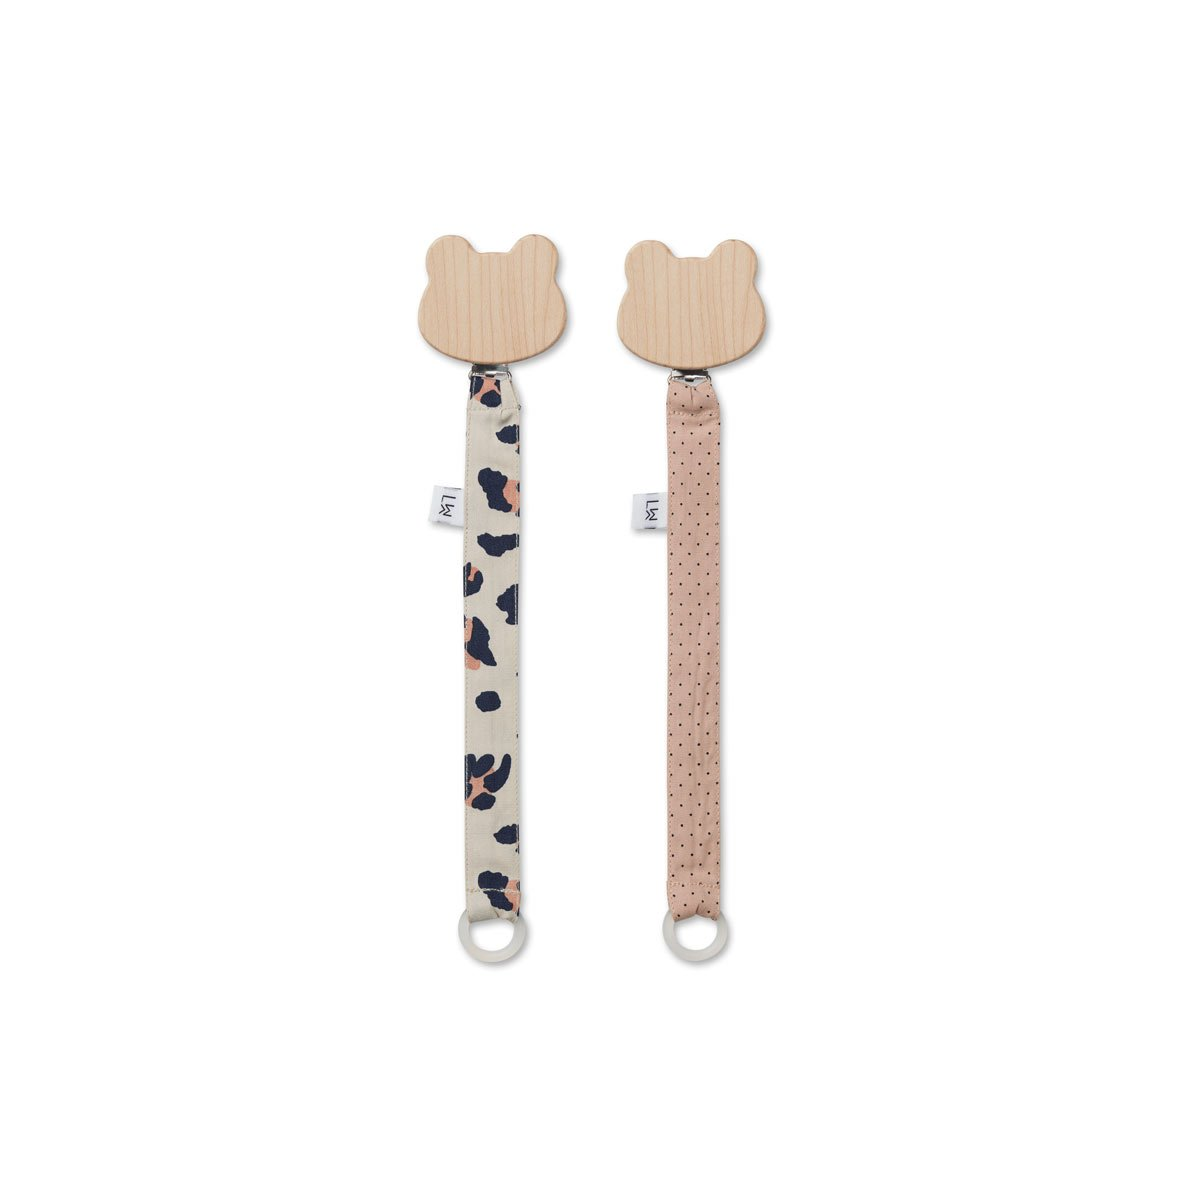 sia pacifier strap 2 pack - leo beige beauty 豹紋圖案奶嘴夾 (兩件裝)